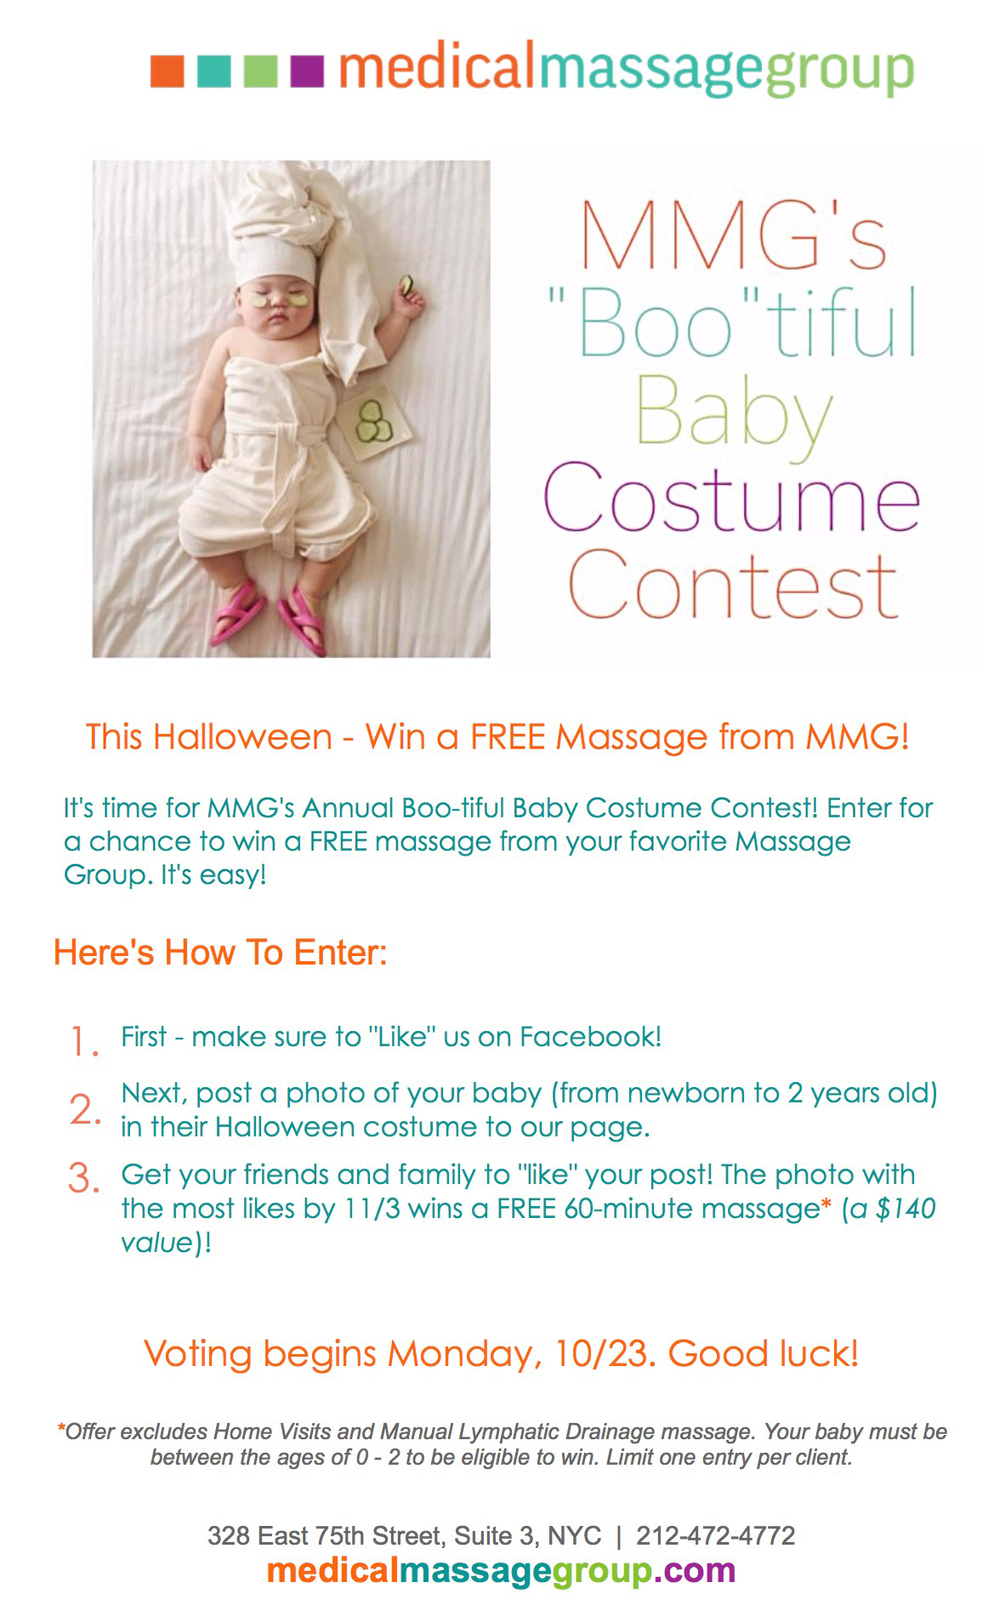 mmg-bootifulbabycontest.png